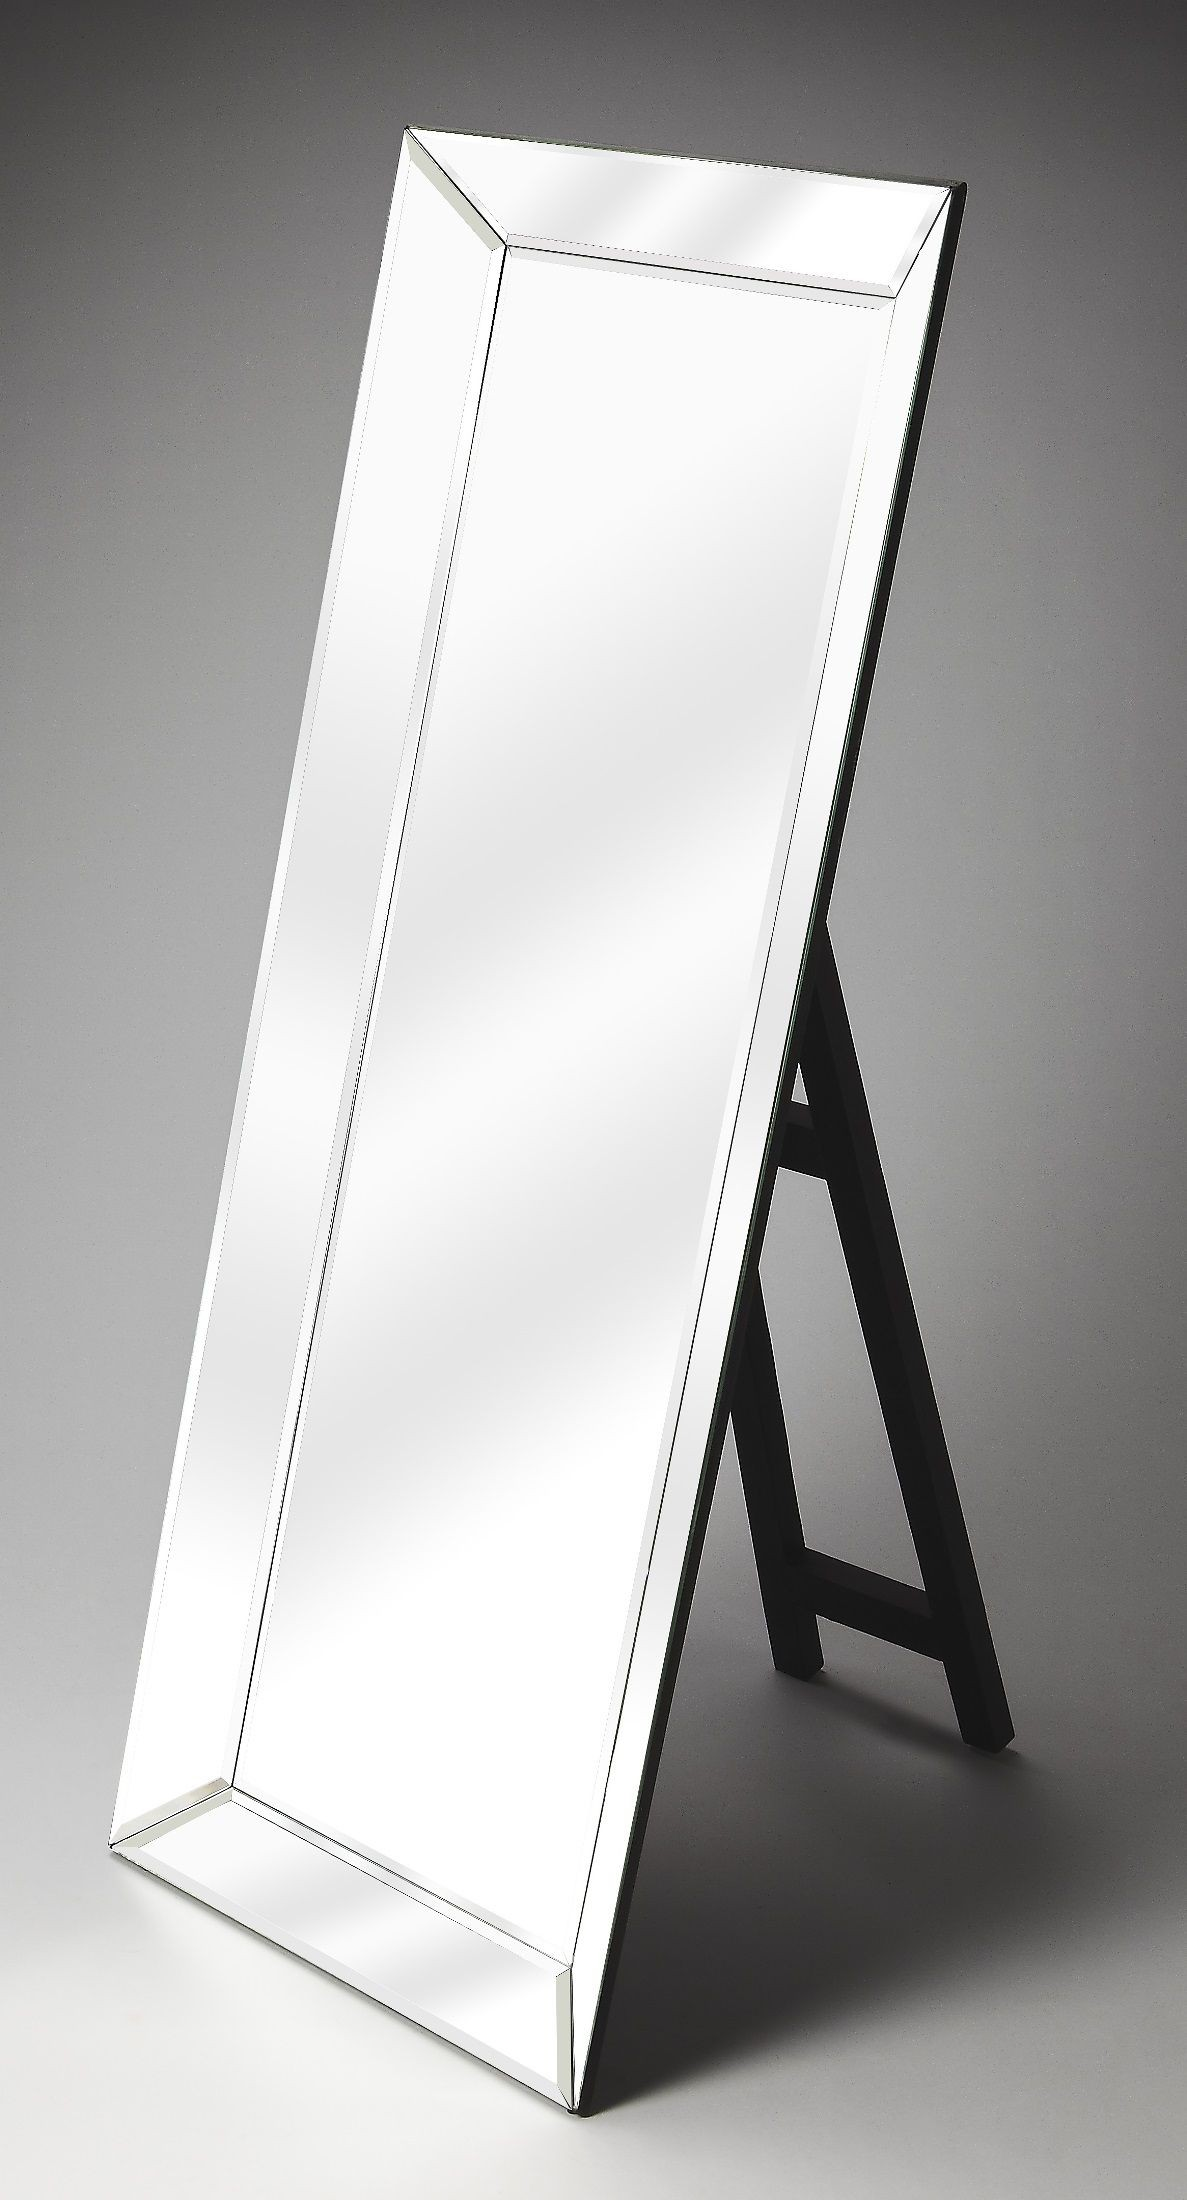 Loft Style Window Mirror Emerson Loft Mirror Floor Standing Mirror From Butler